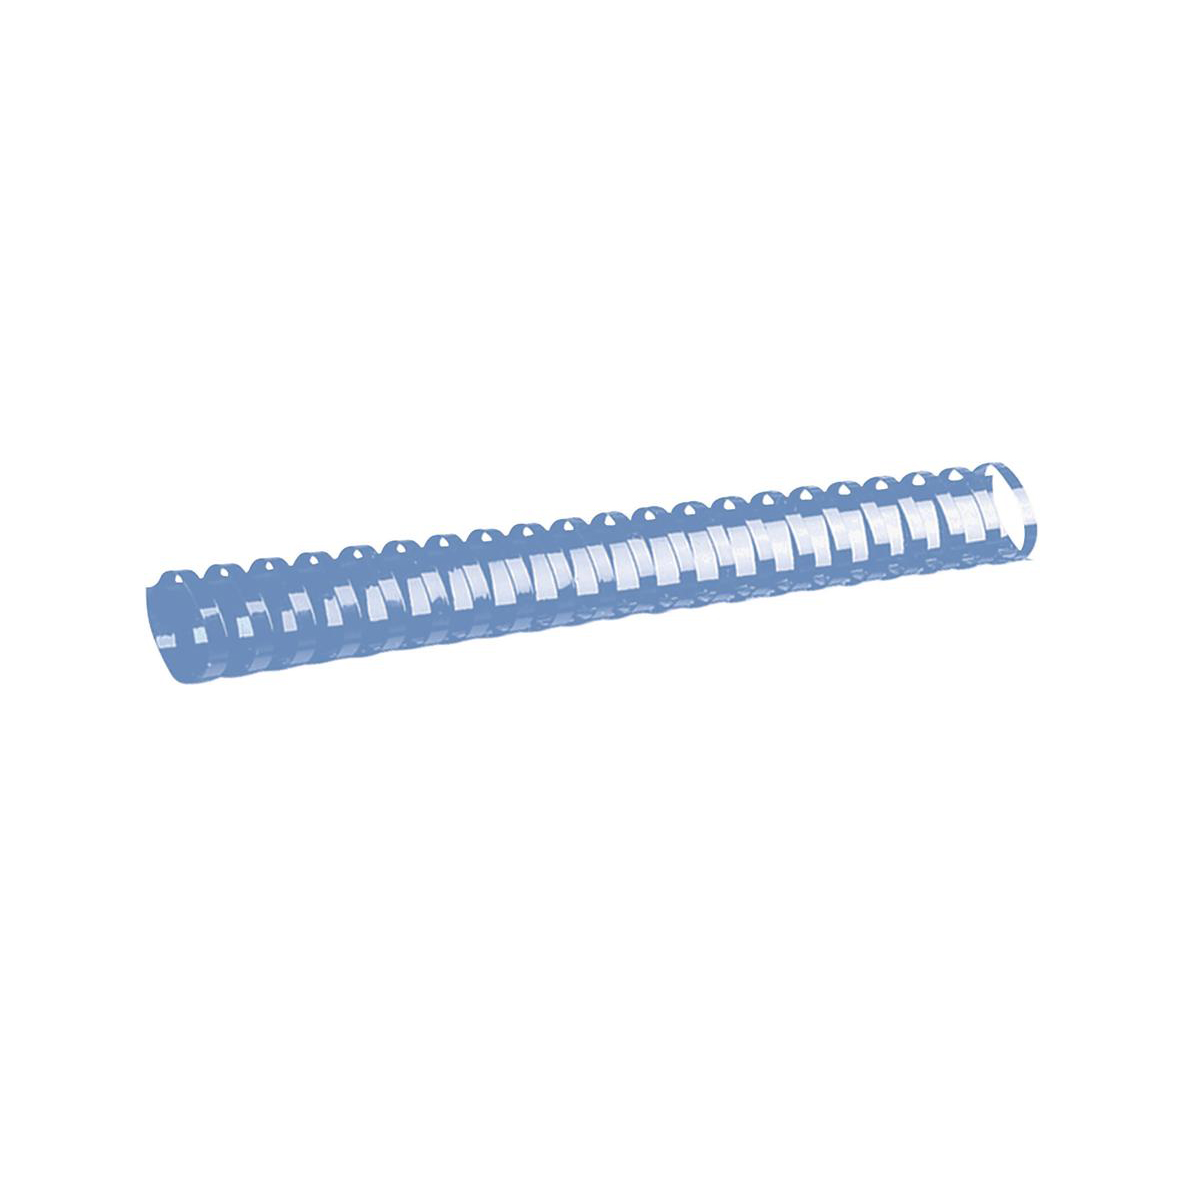 GBC Binding Combs Plastic 21 Ring 125 Sheets A4 14mm Blue Ref 4028238 Pack 100